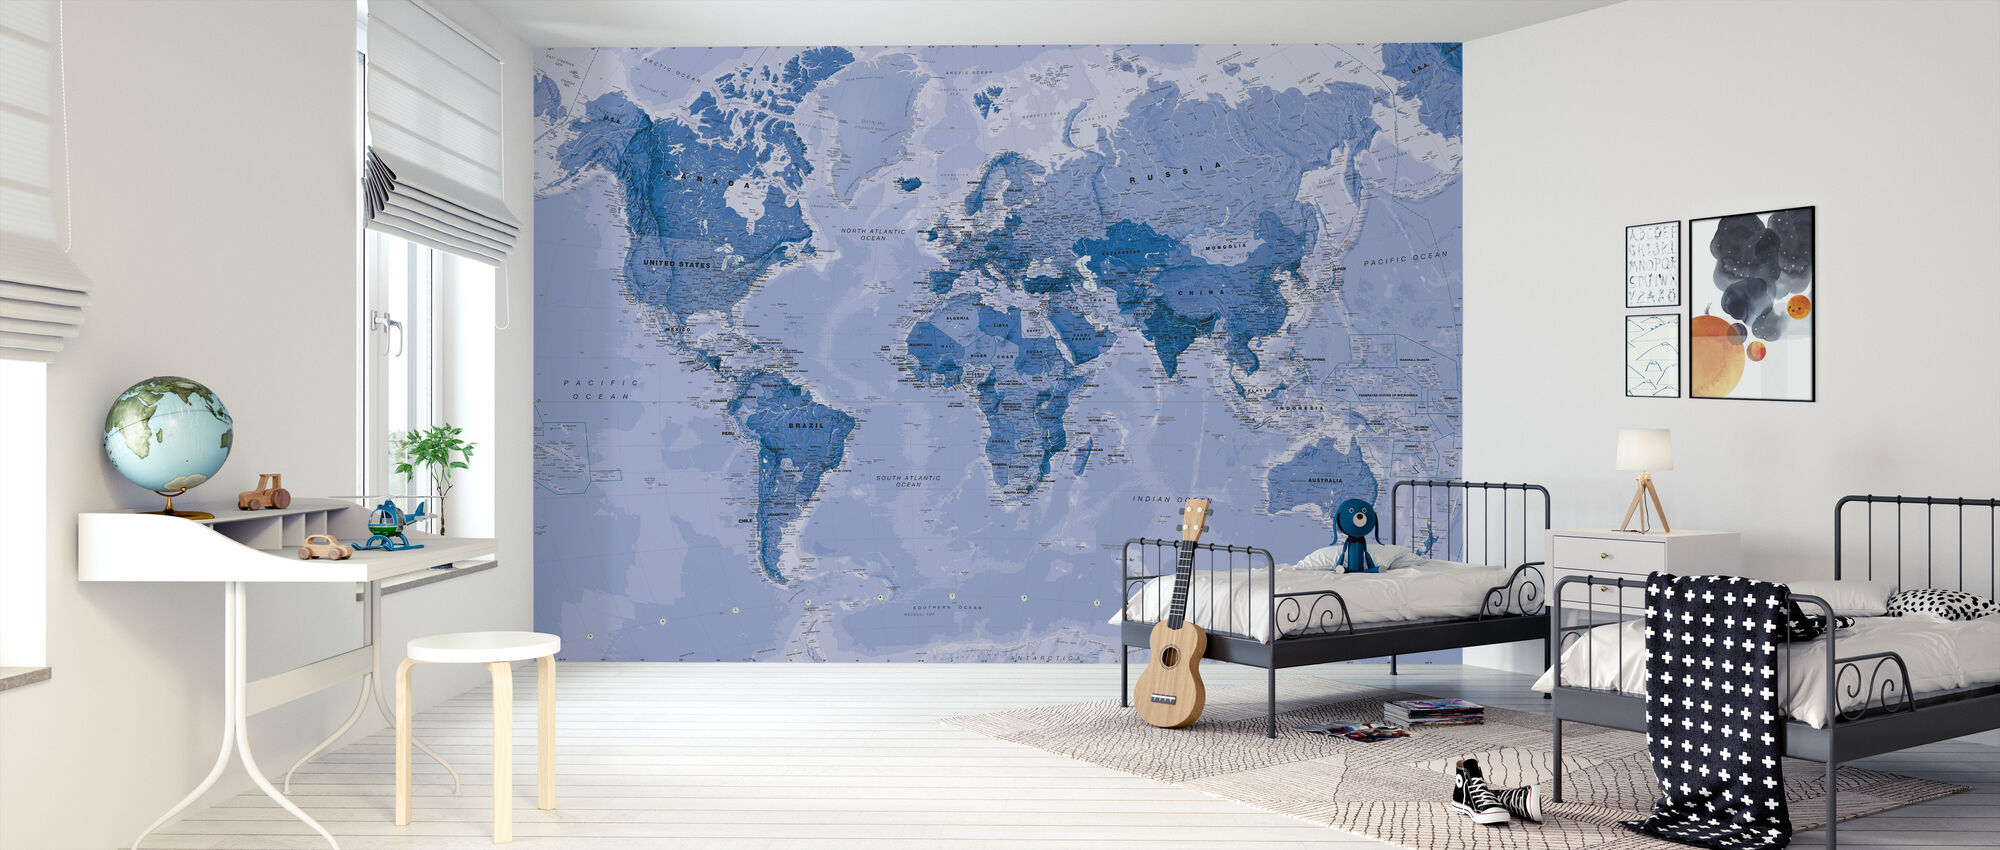 World Map Blue - Wallpaper - Kids Room